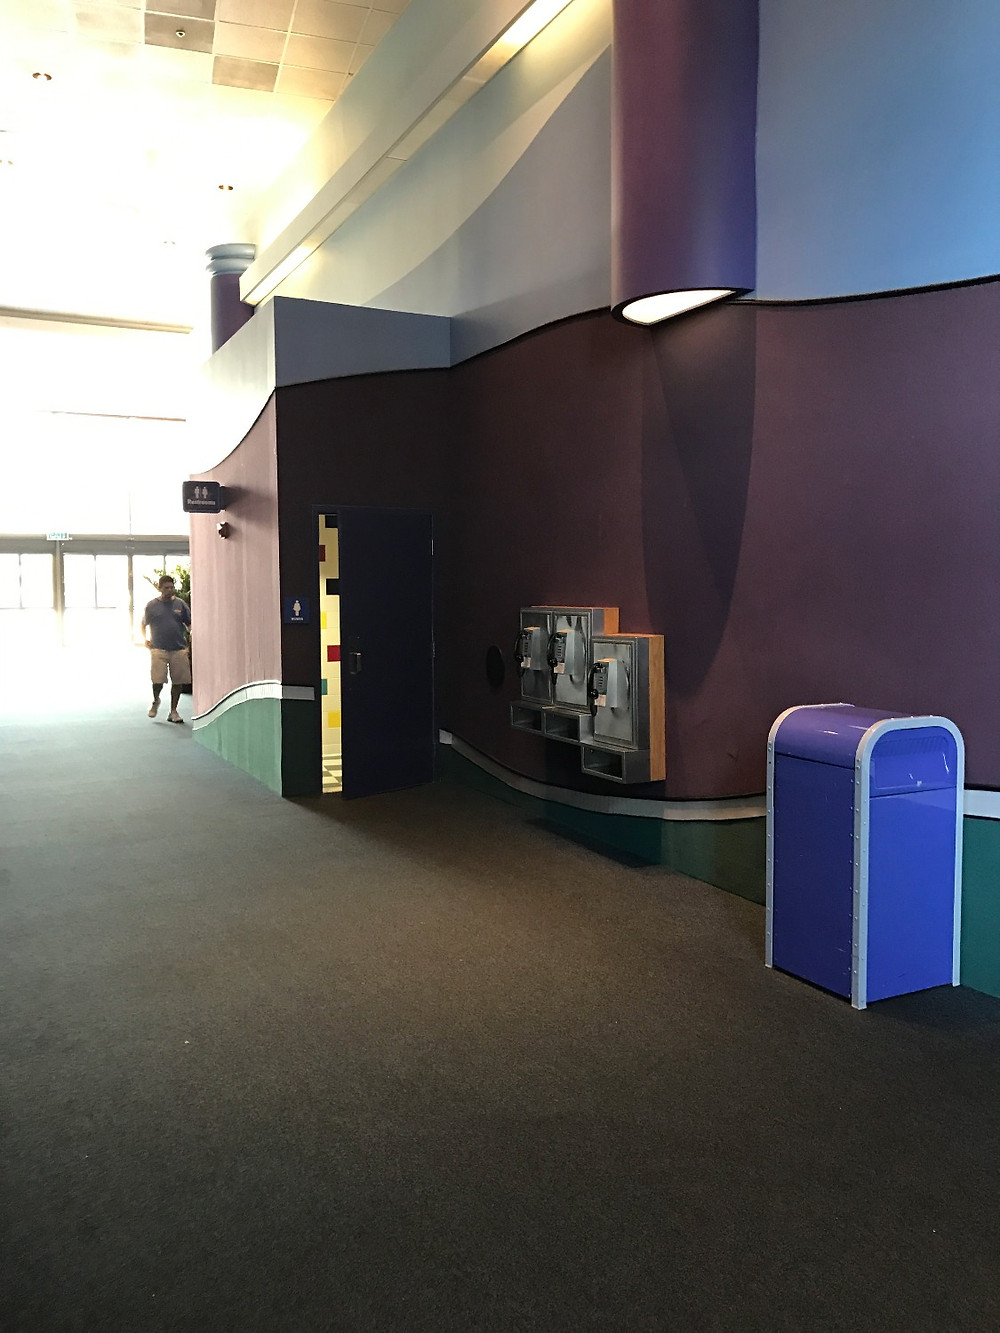 View of the Women's Loo, Innoventions West